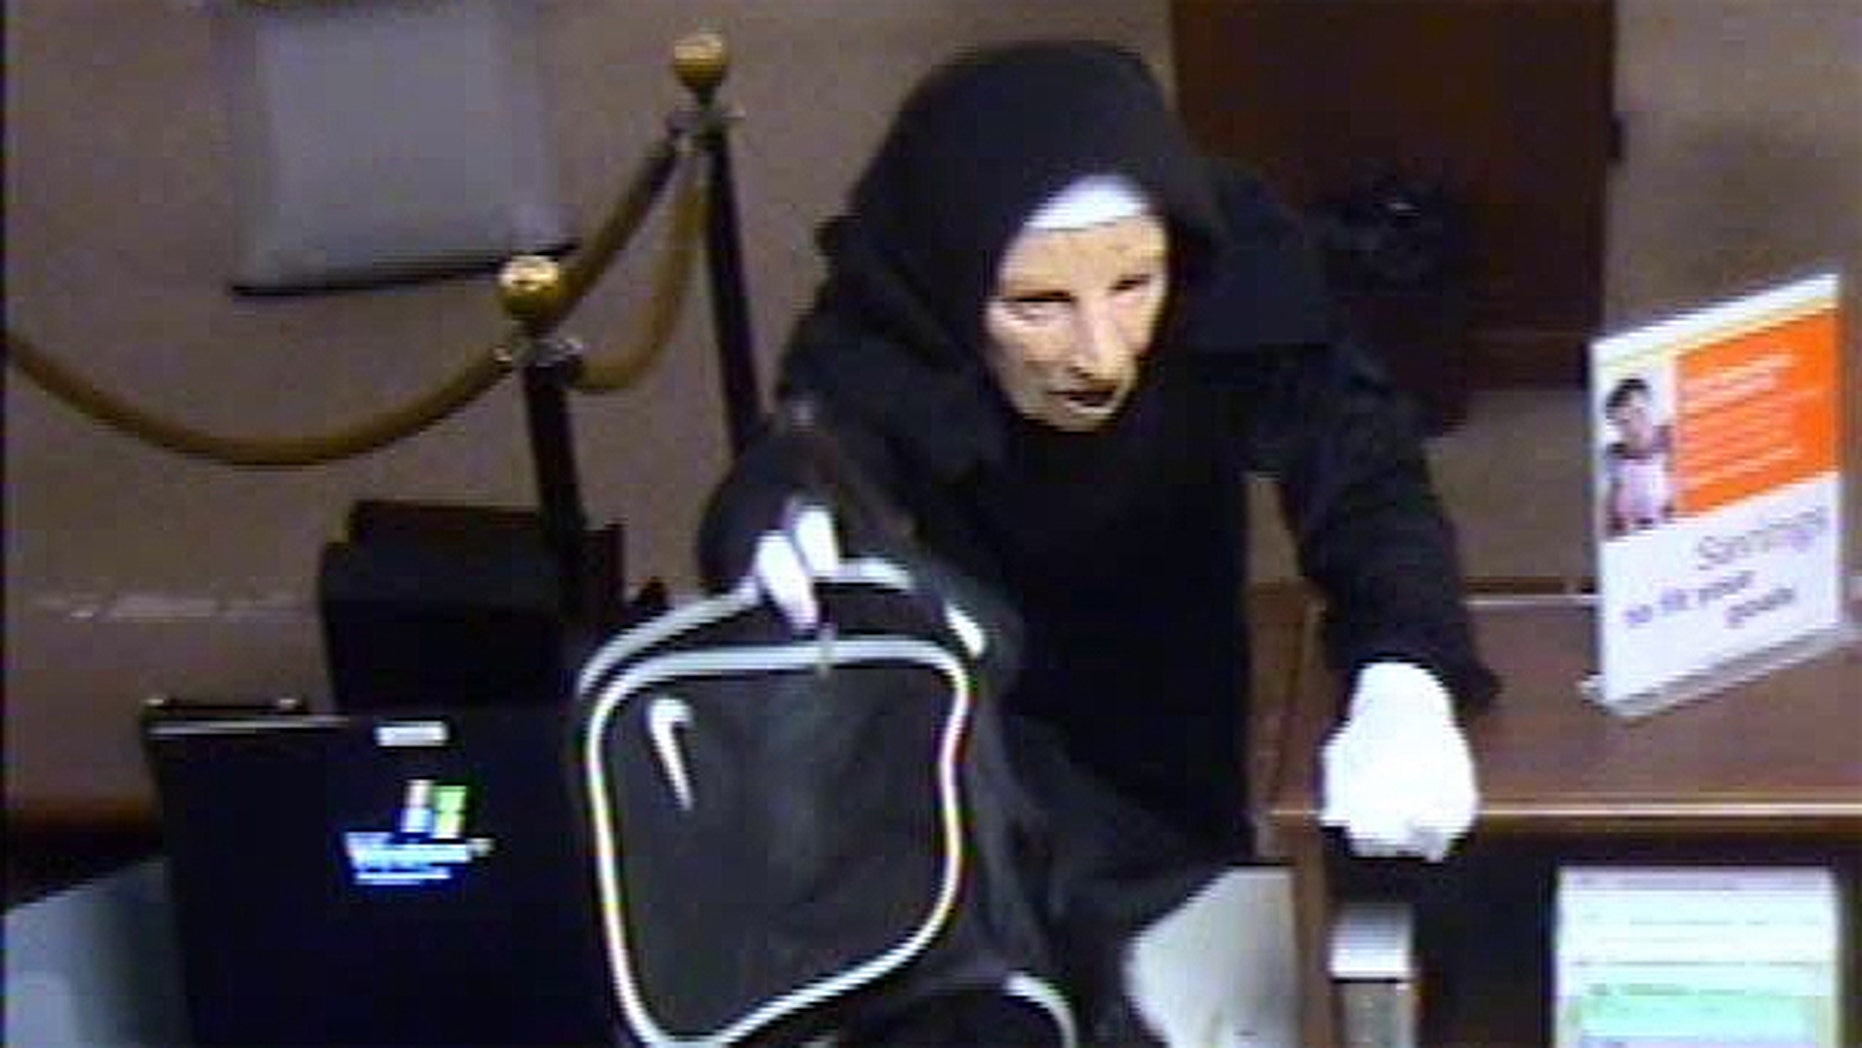 May 29: Two people in nun masks robbed a TCF bank in Palos Heights, outside Chicago.